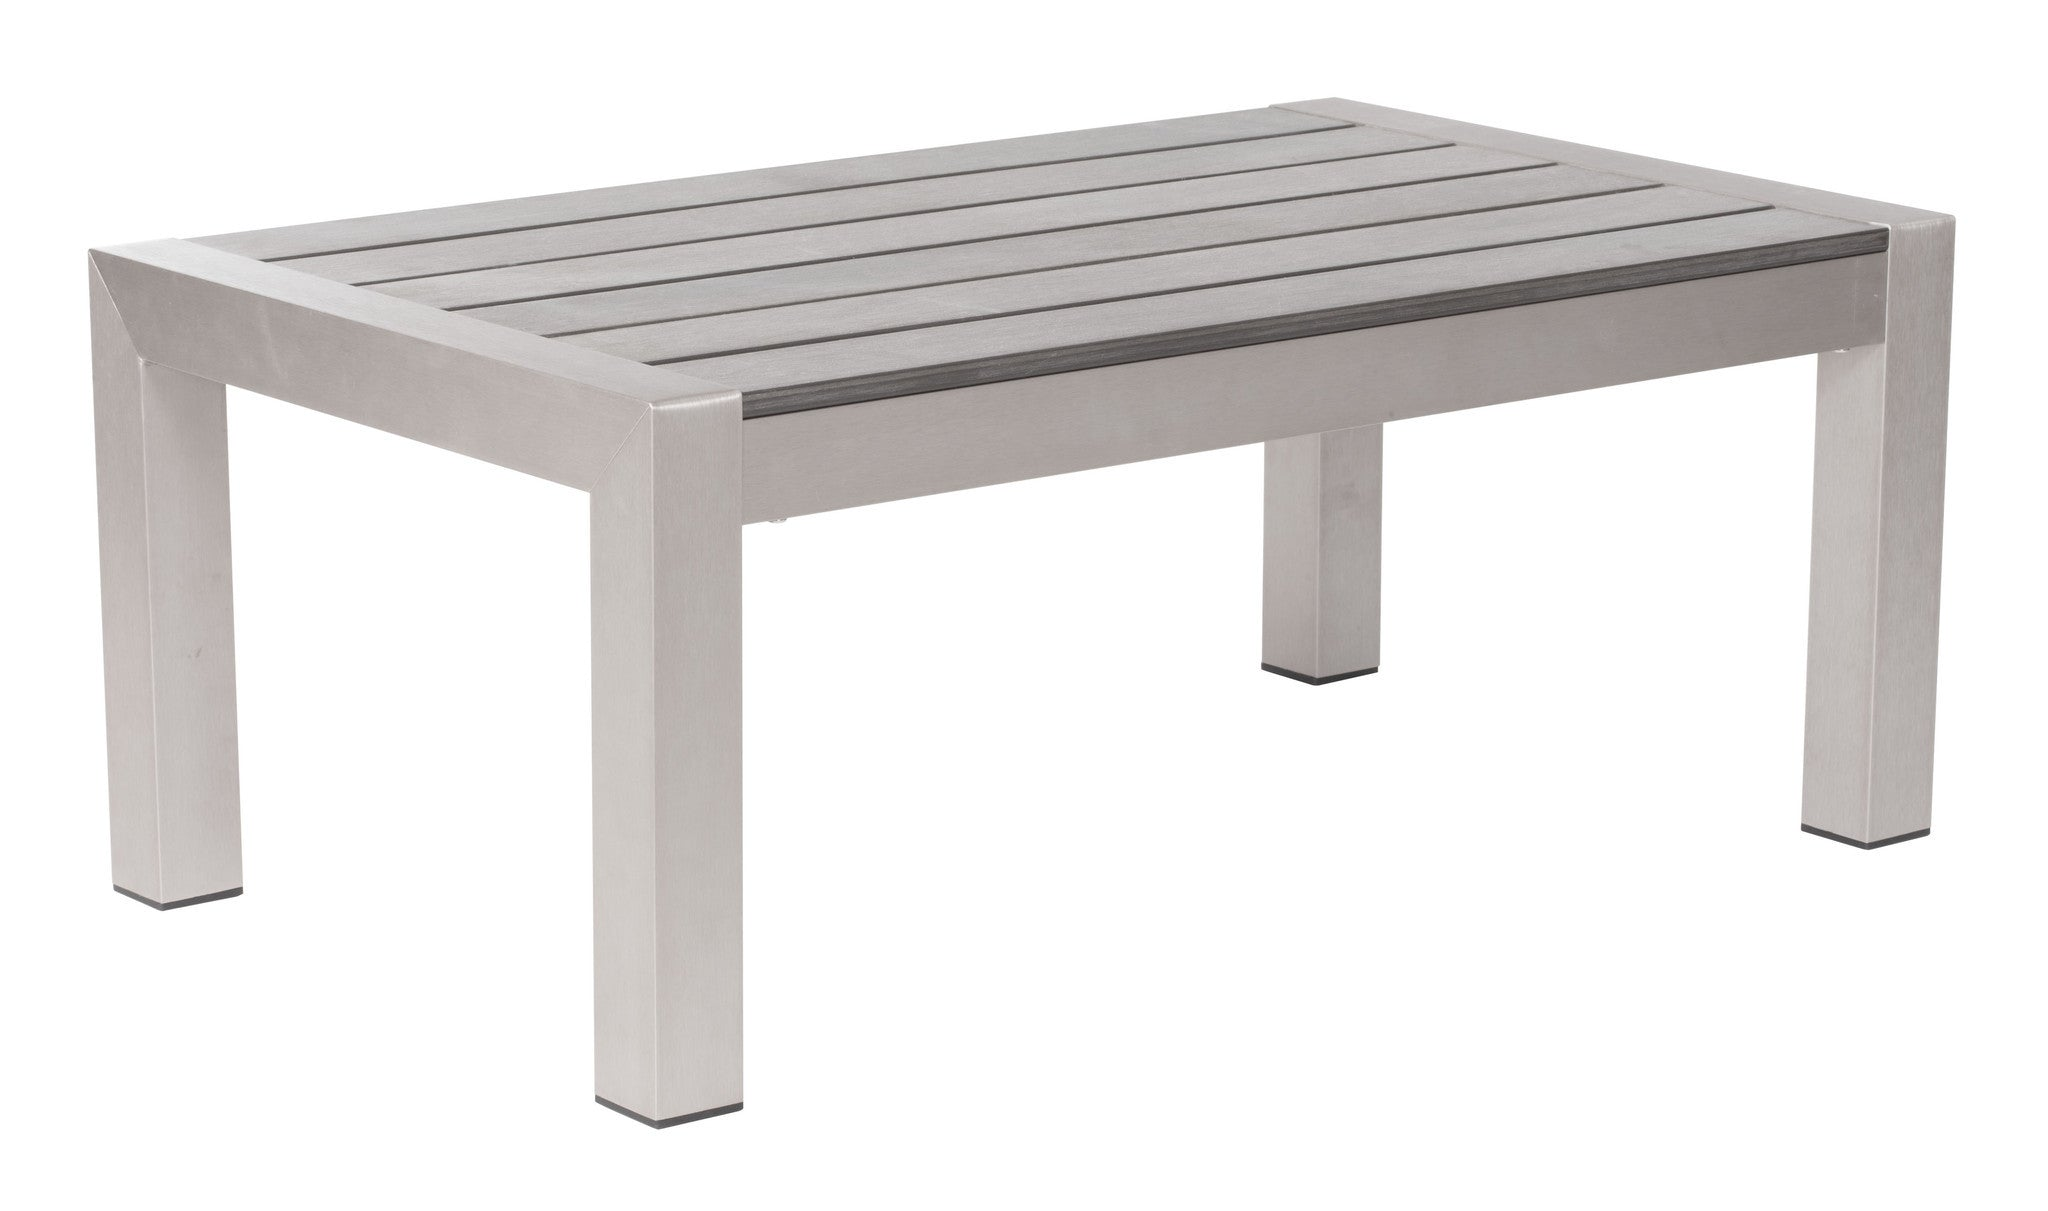 Cosmopolitan Patio Coffee Table In Brushed Aluminum - Black aluminum outdoor coffee table